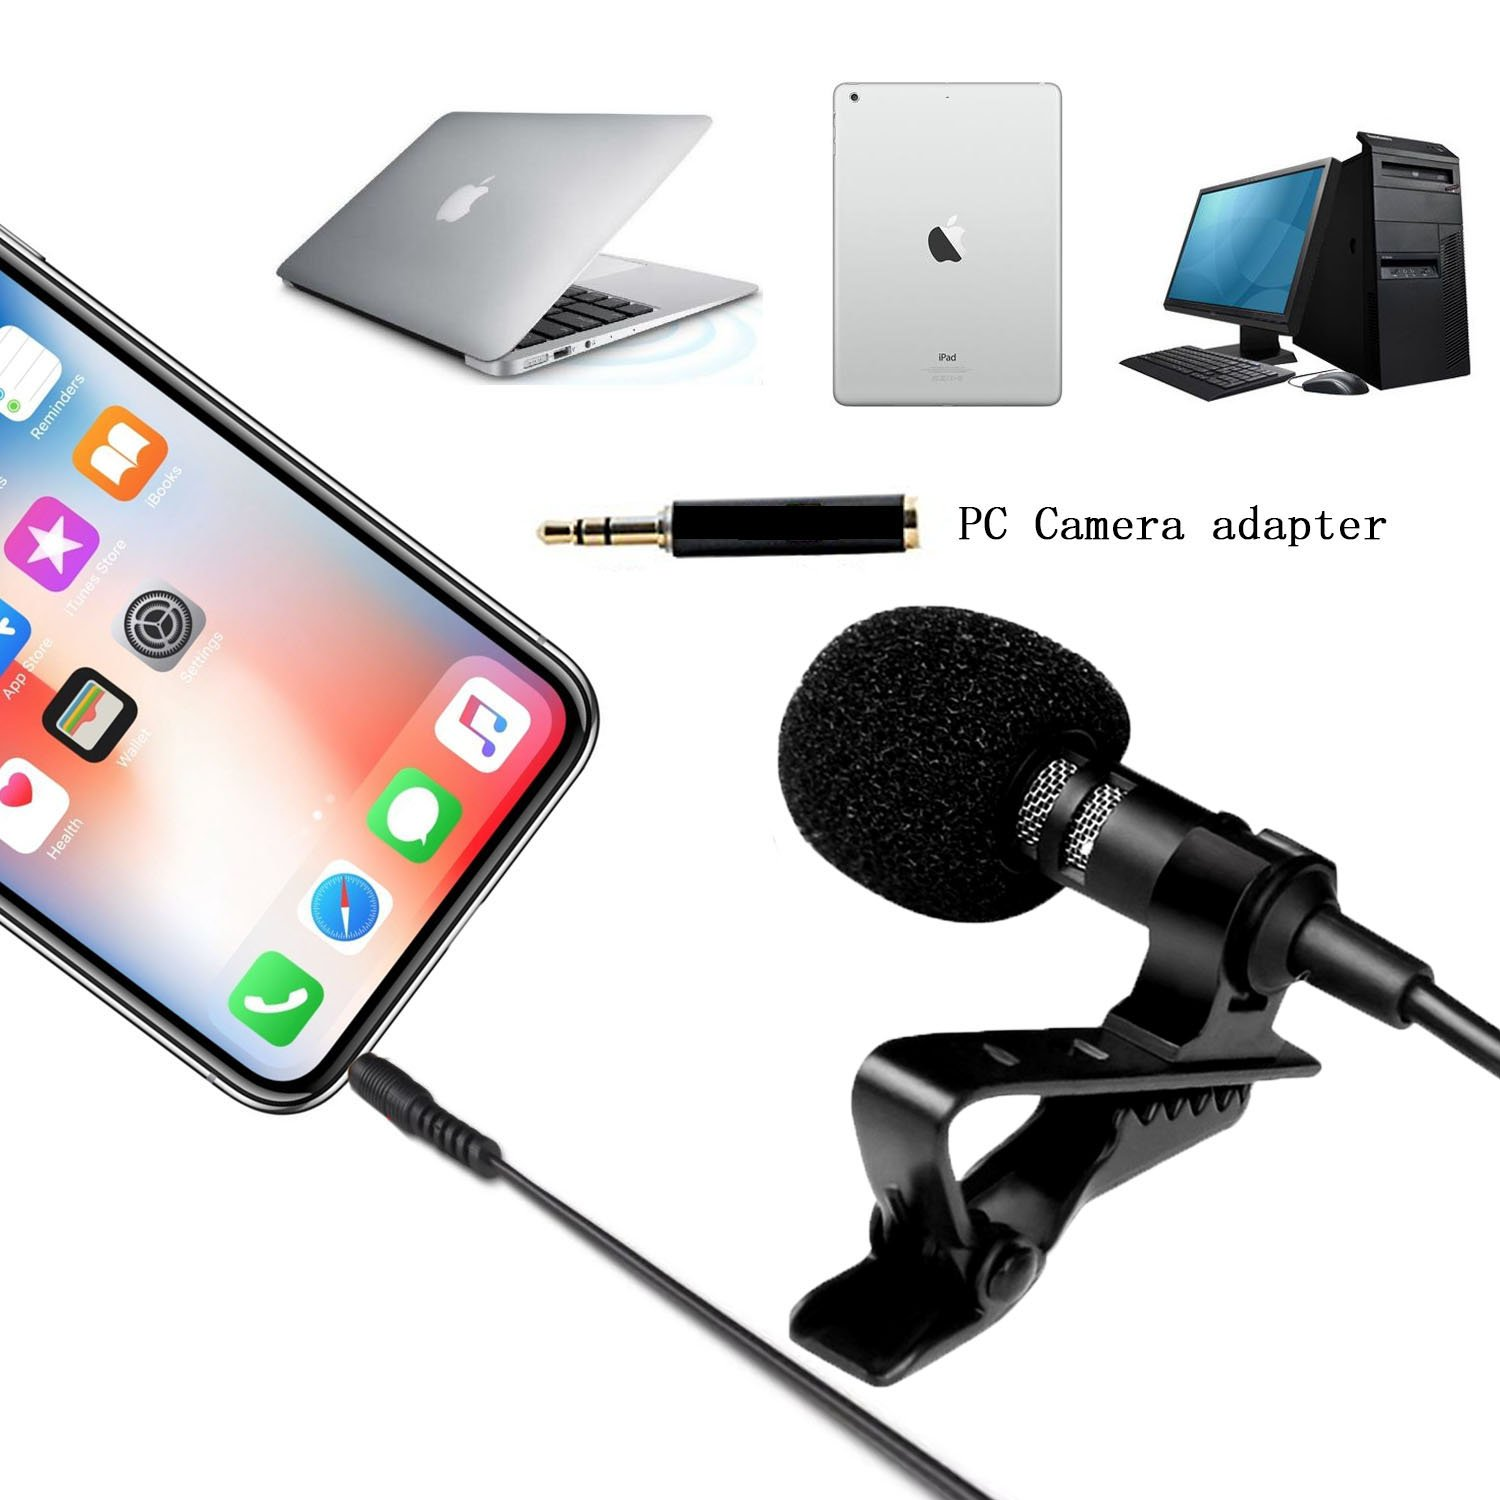 EIALA Professional No1. Lavalier Lapel Microphone ­ Omnidirectional Mic with Easy Clip On System ­ Perfect for Recording Youtube / Interview / Video Conference / Podcast / Voice Dictation / iPhone iPad iPod Android Mac PC mkfss002